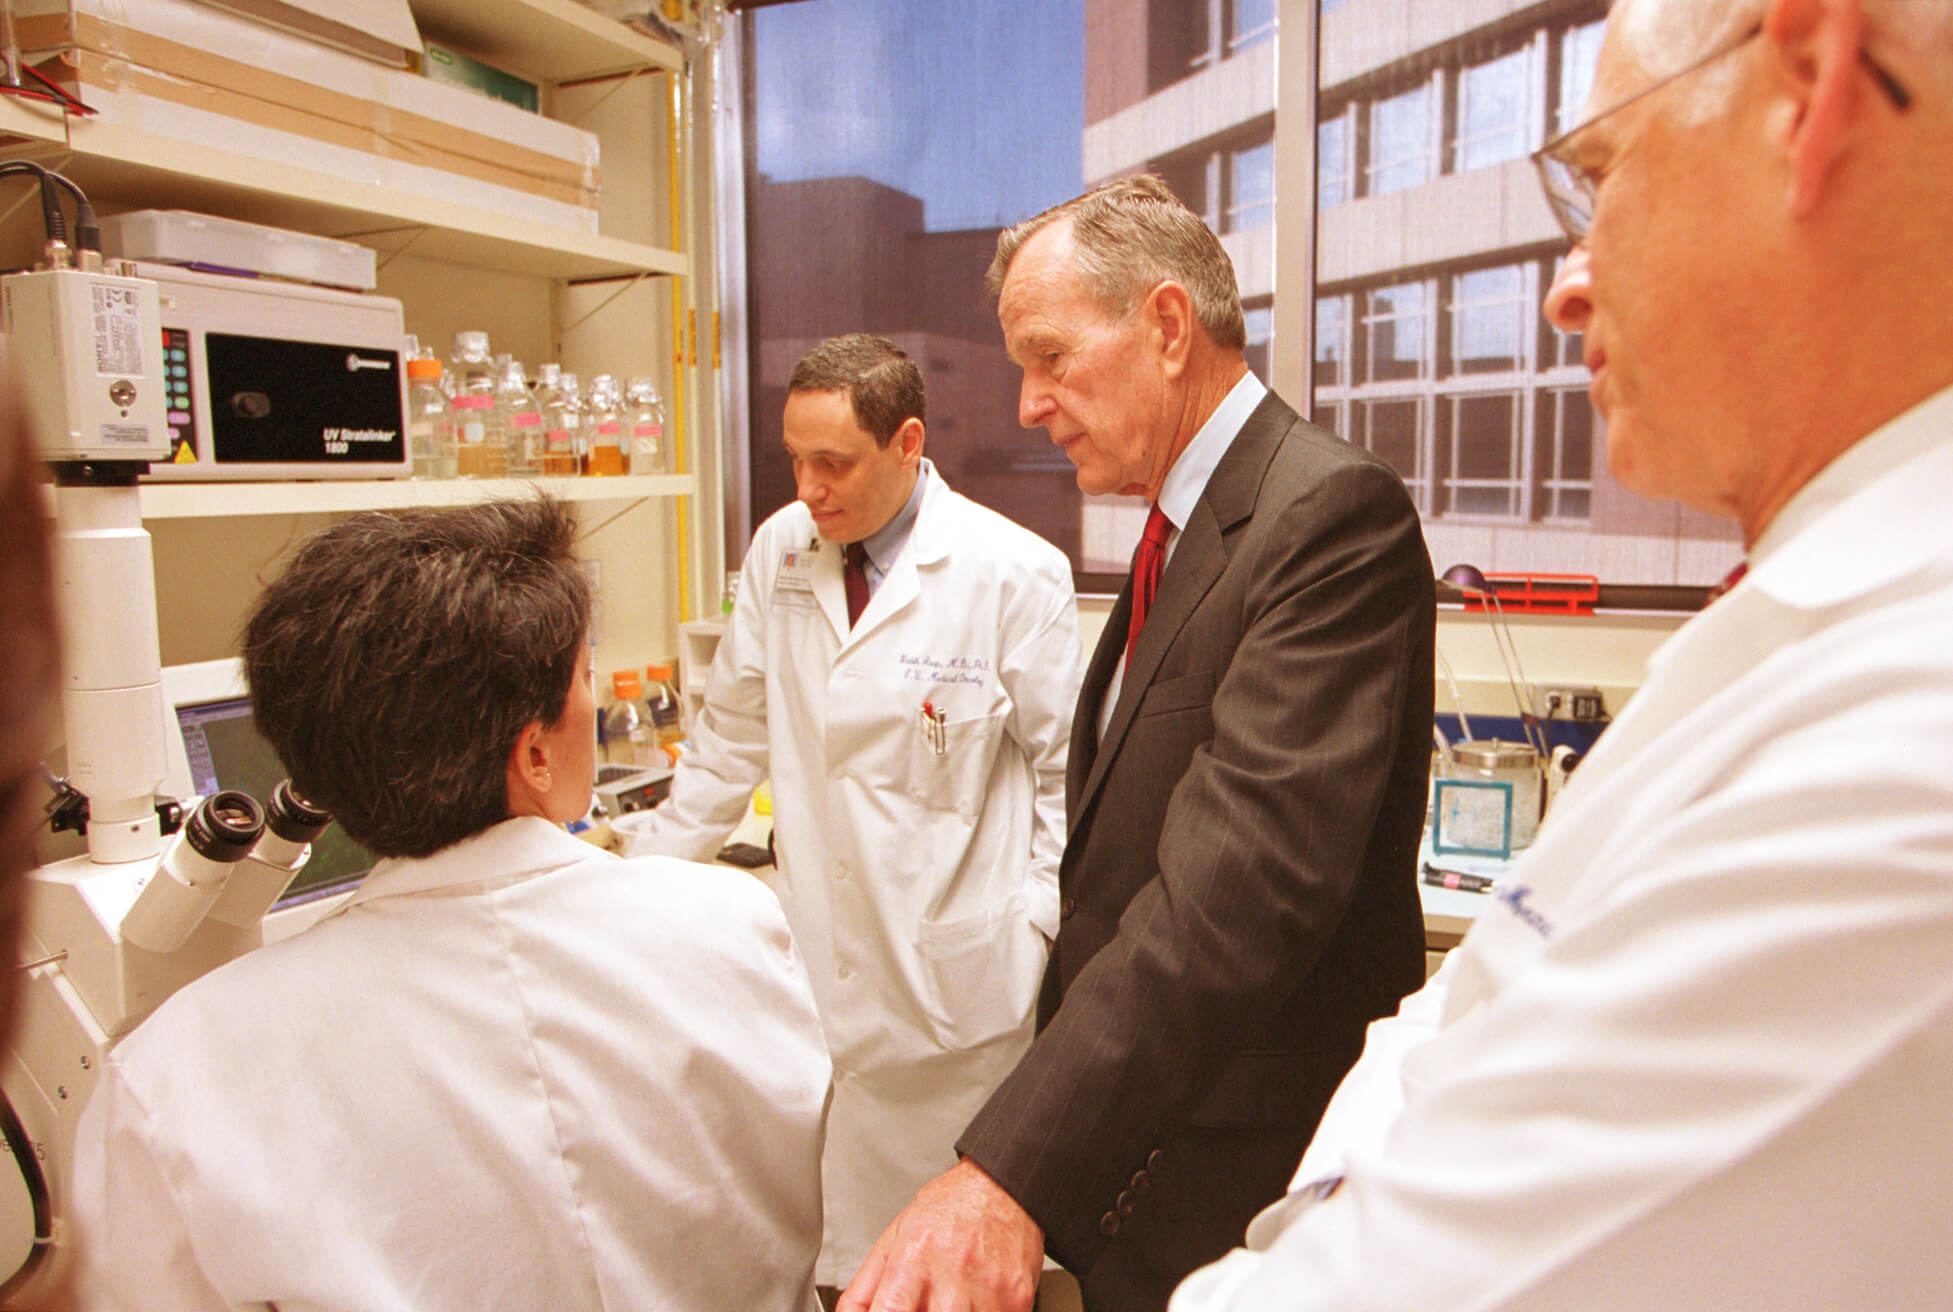 Former President George Bush tours the University of Texas MD Anderson Cancer Center in 2001 and talks with researchers about tumors in test mice as then-President John Mendelsohn, M.D., right, observes. (Courtesy of MD Anderson)